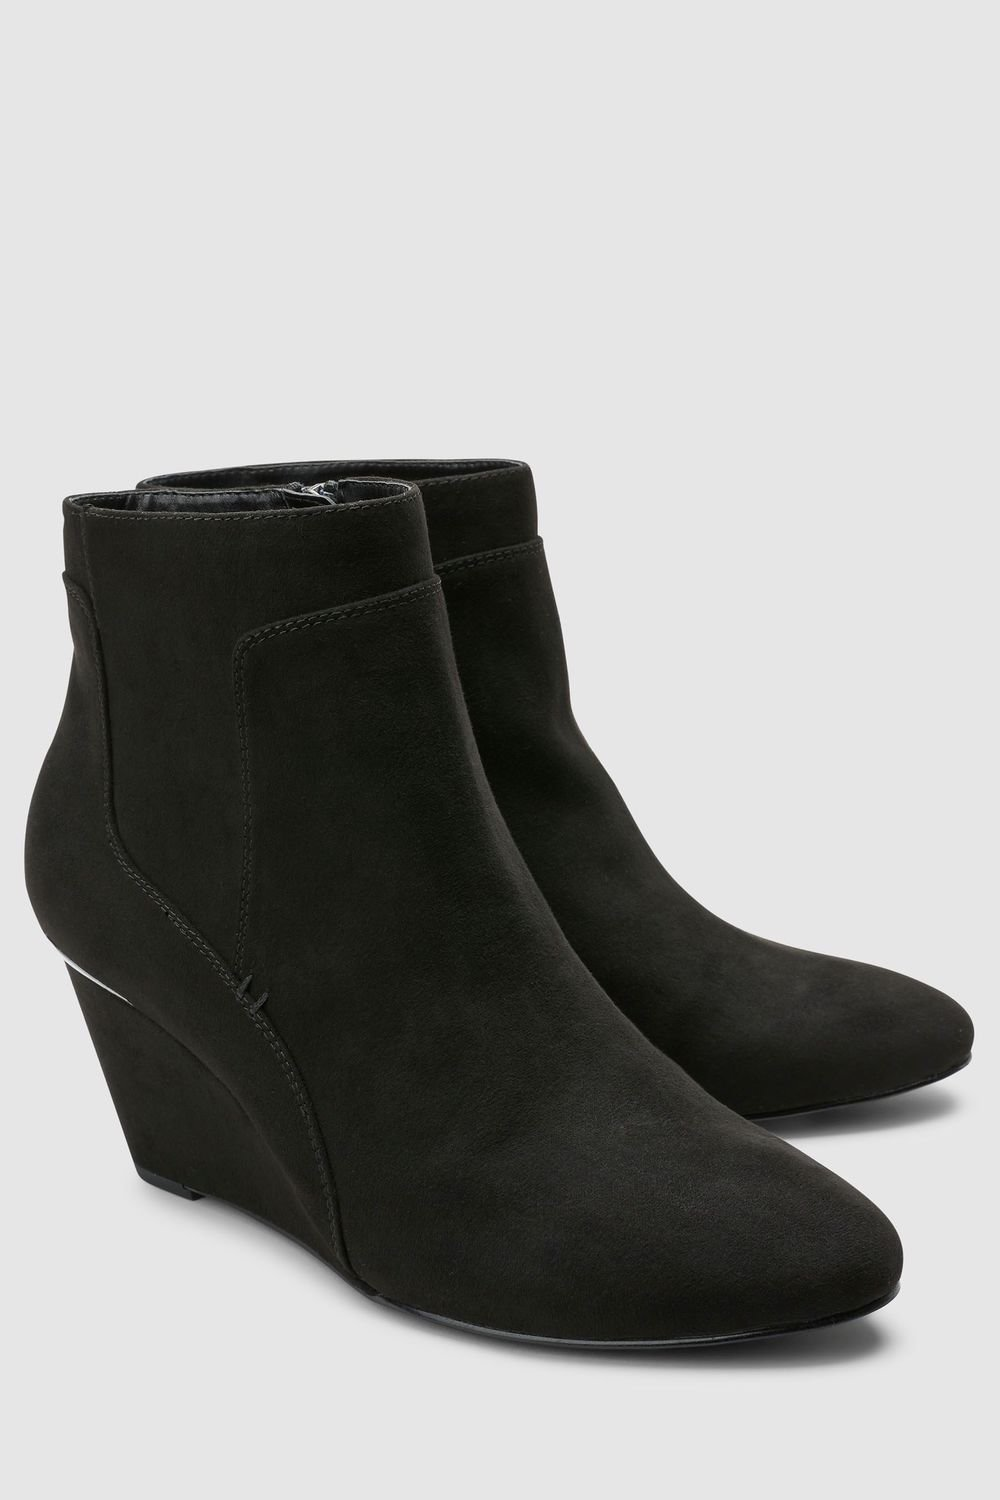 df0ac9e6695aa0 Next Forever Comfort Wedge Ankle Boots Online